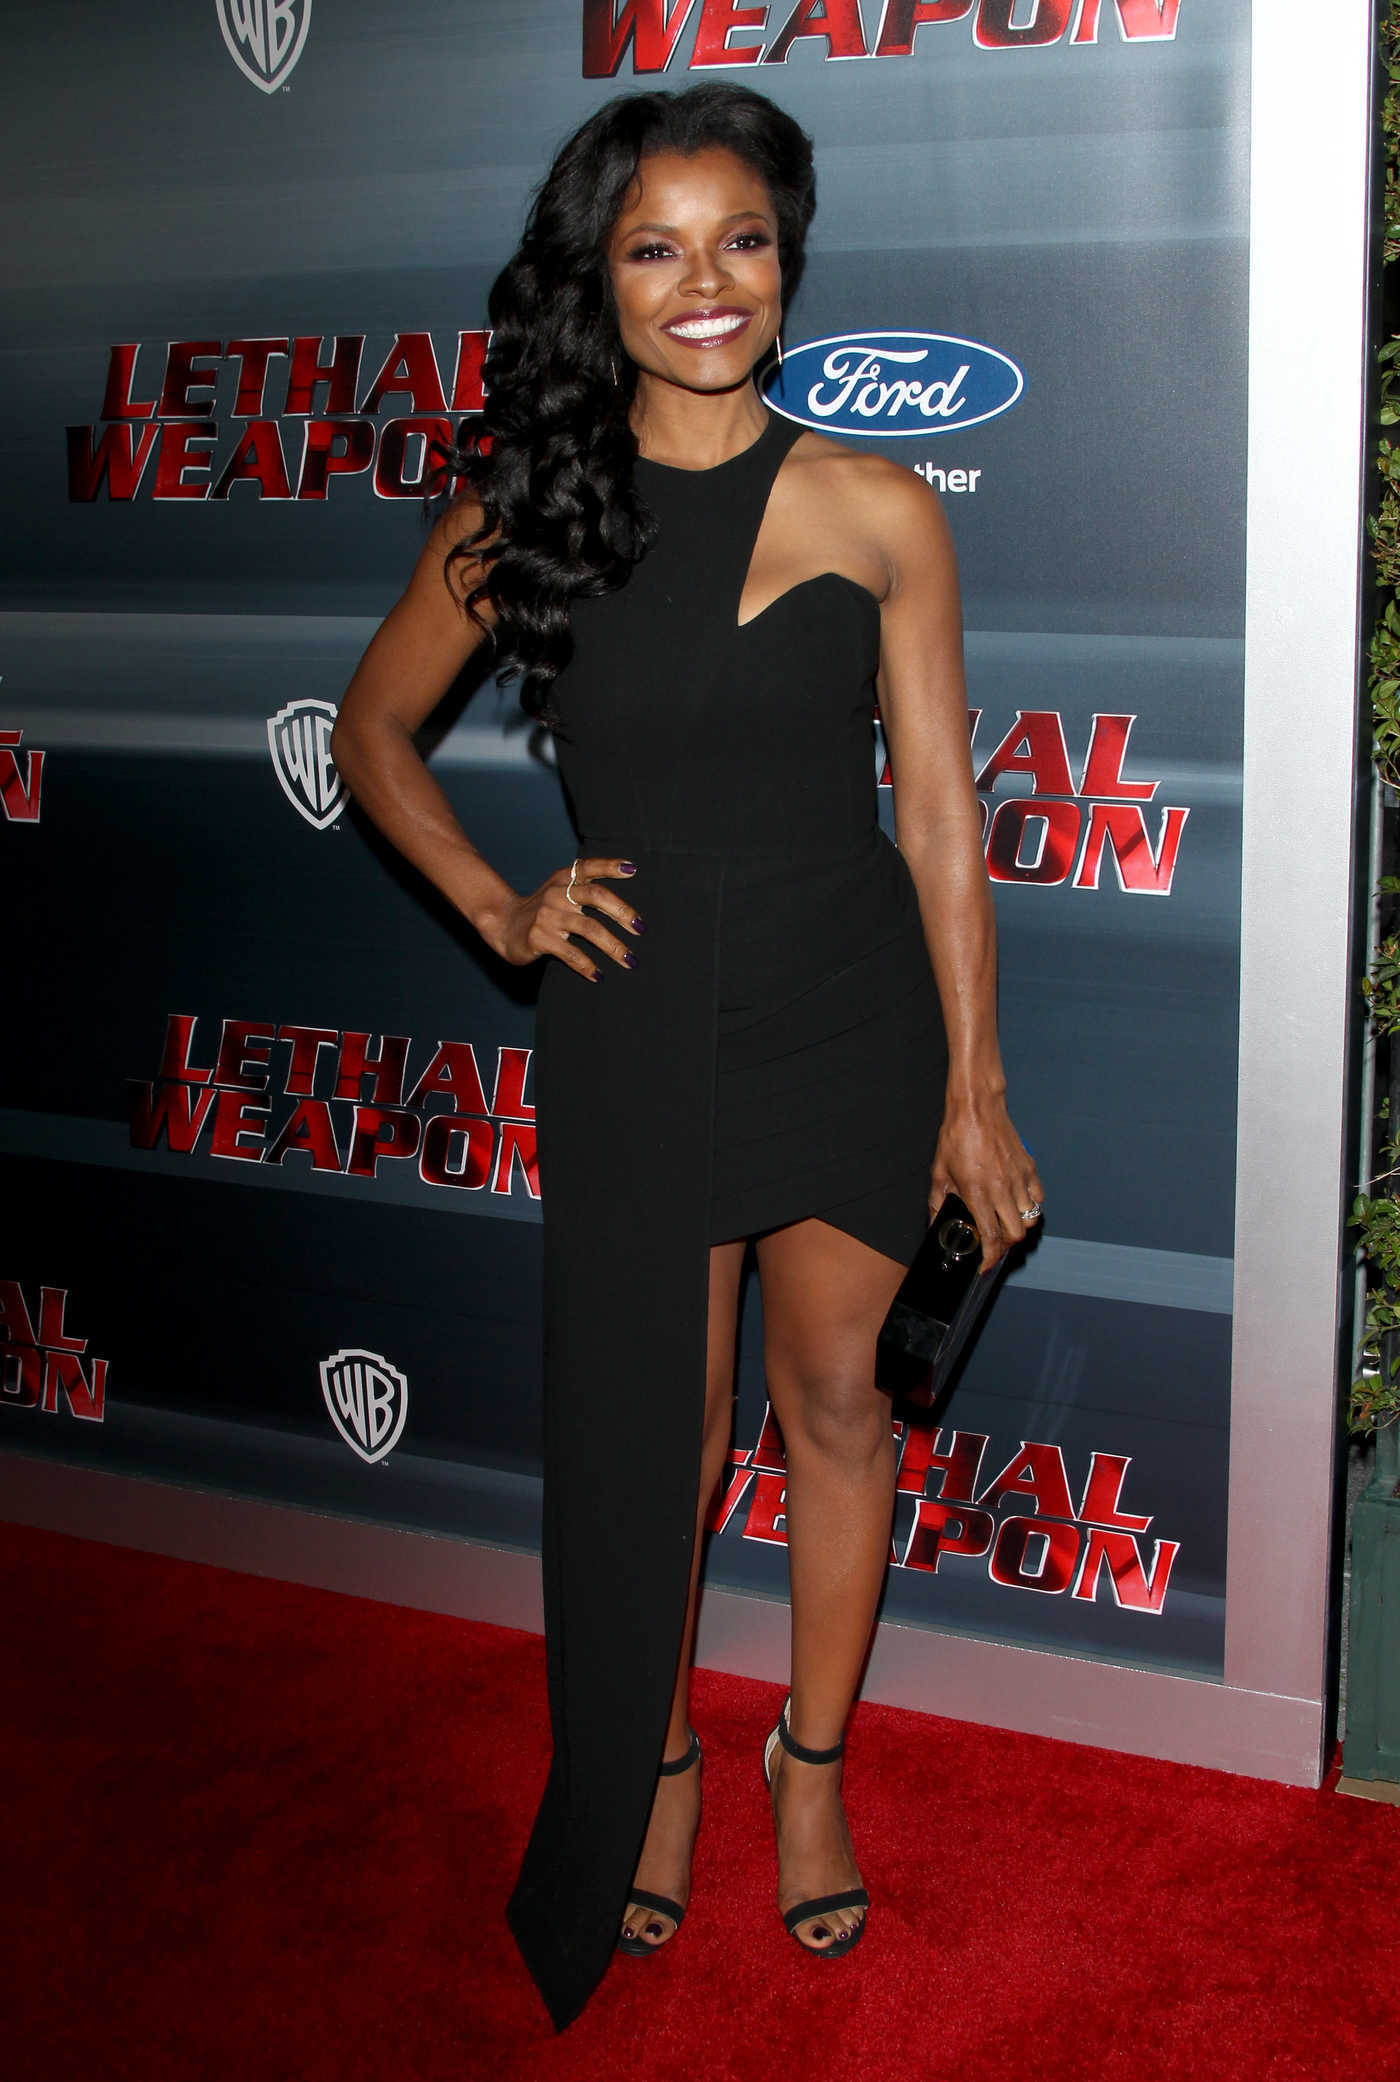 Keesha Sharp at the Lethal Weapon Premiere in Los Angeles 09/12/2016